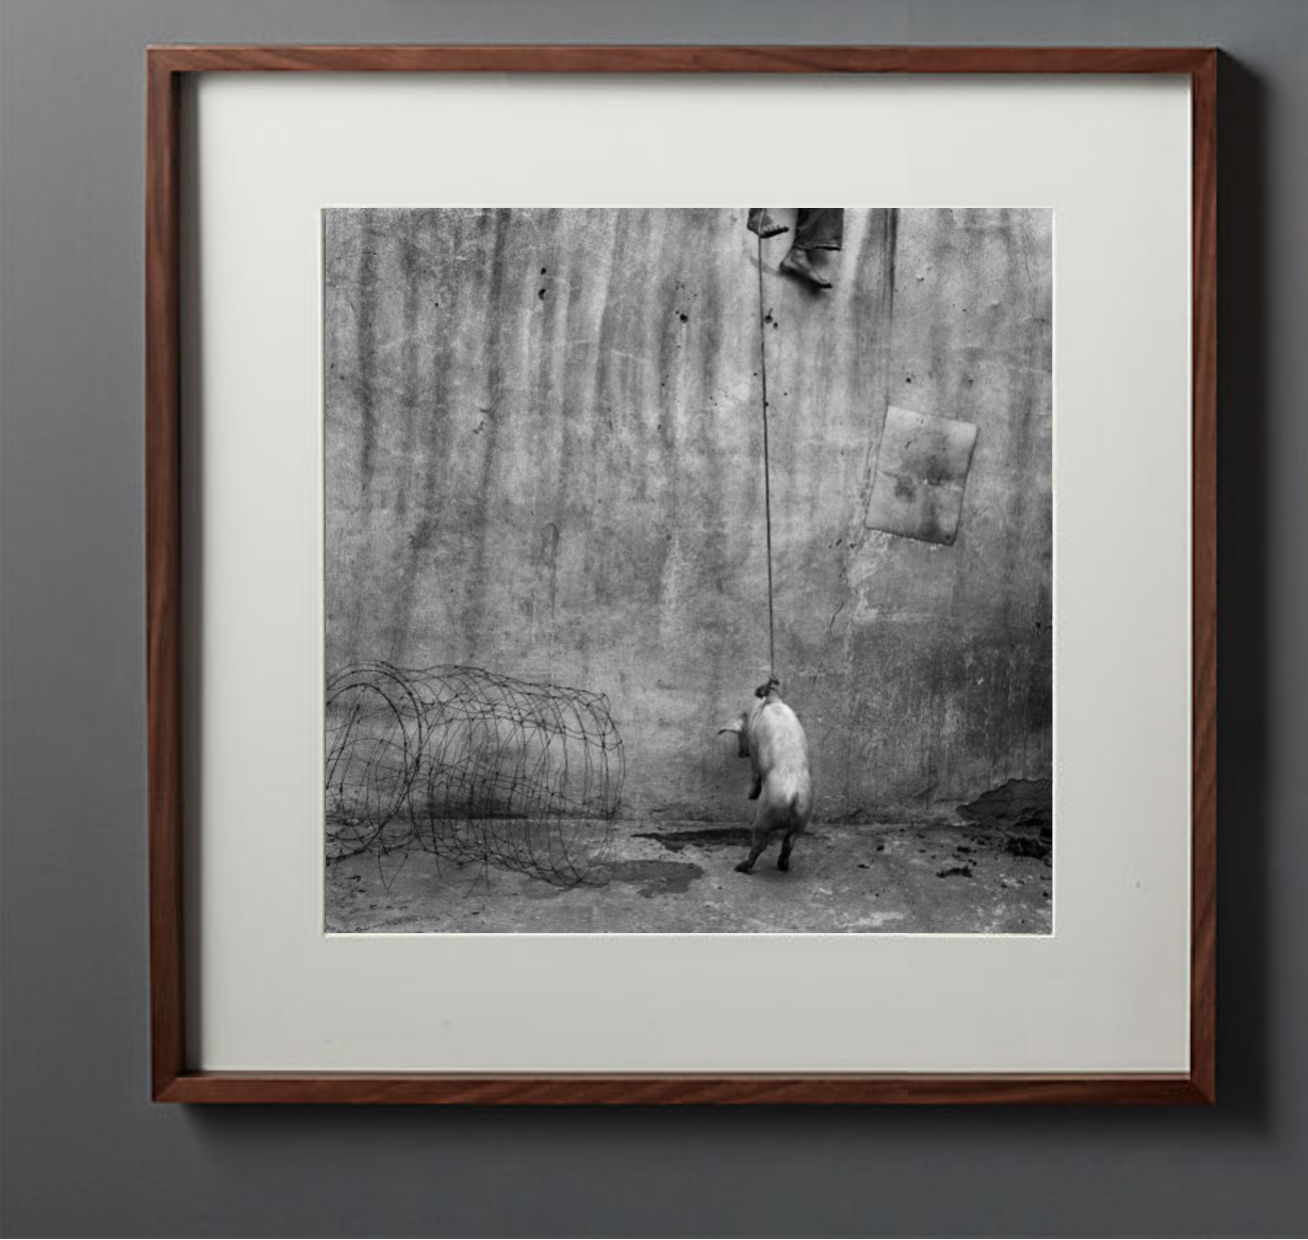 "Roger Ballen's The Hanging Pig (2001) - Size: 15"" x 15""Glimpse into the lives of society's outsiders with this signed original print by Roger Ballen.(Photo Credit: Kunzt Gallery/Roger Ballen)Discover the full story in Issue 9."